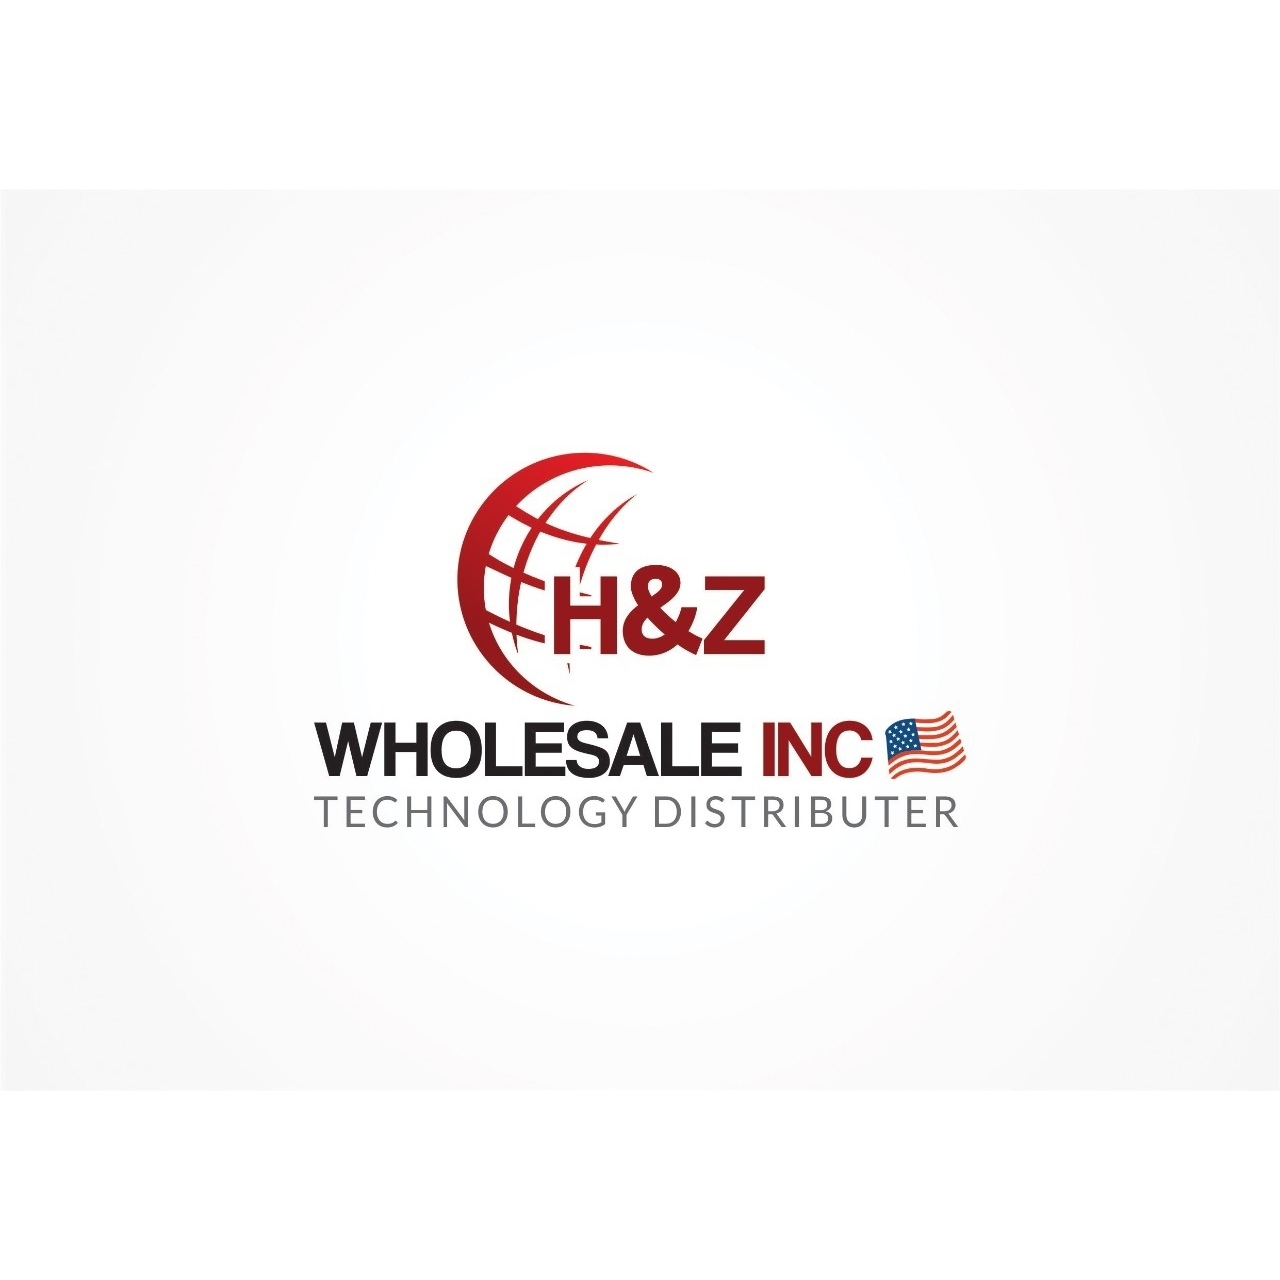 H and Z WHOLESALE INC